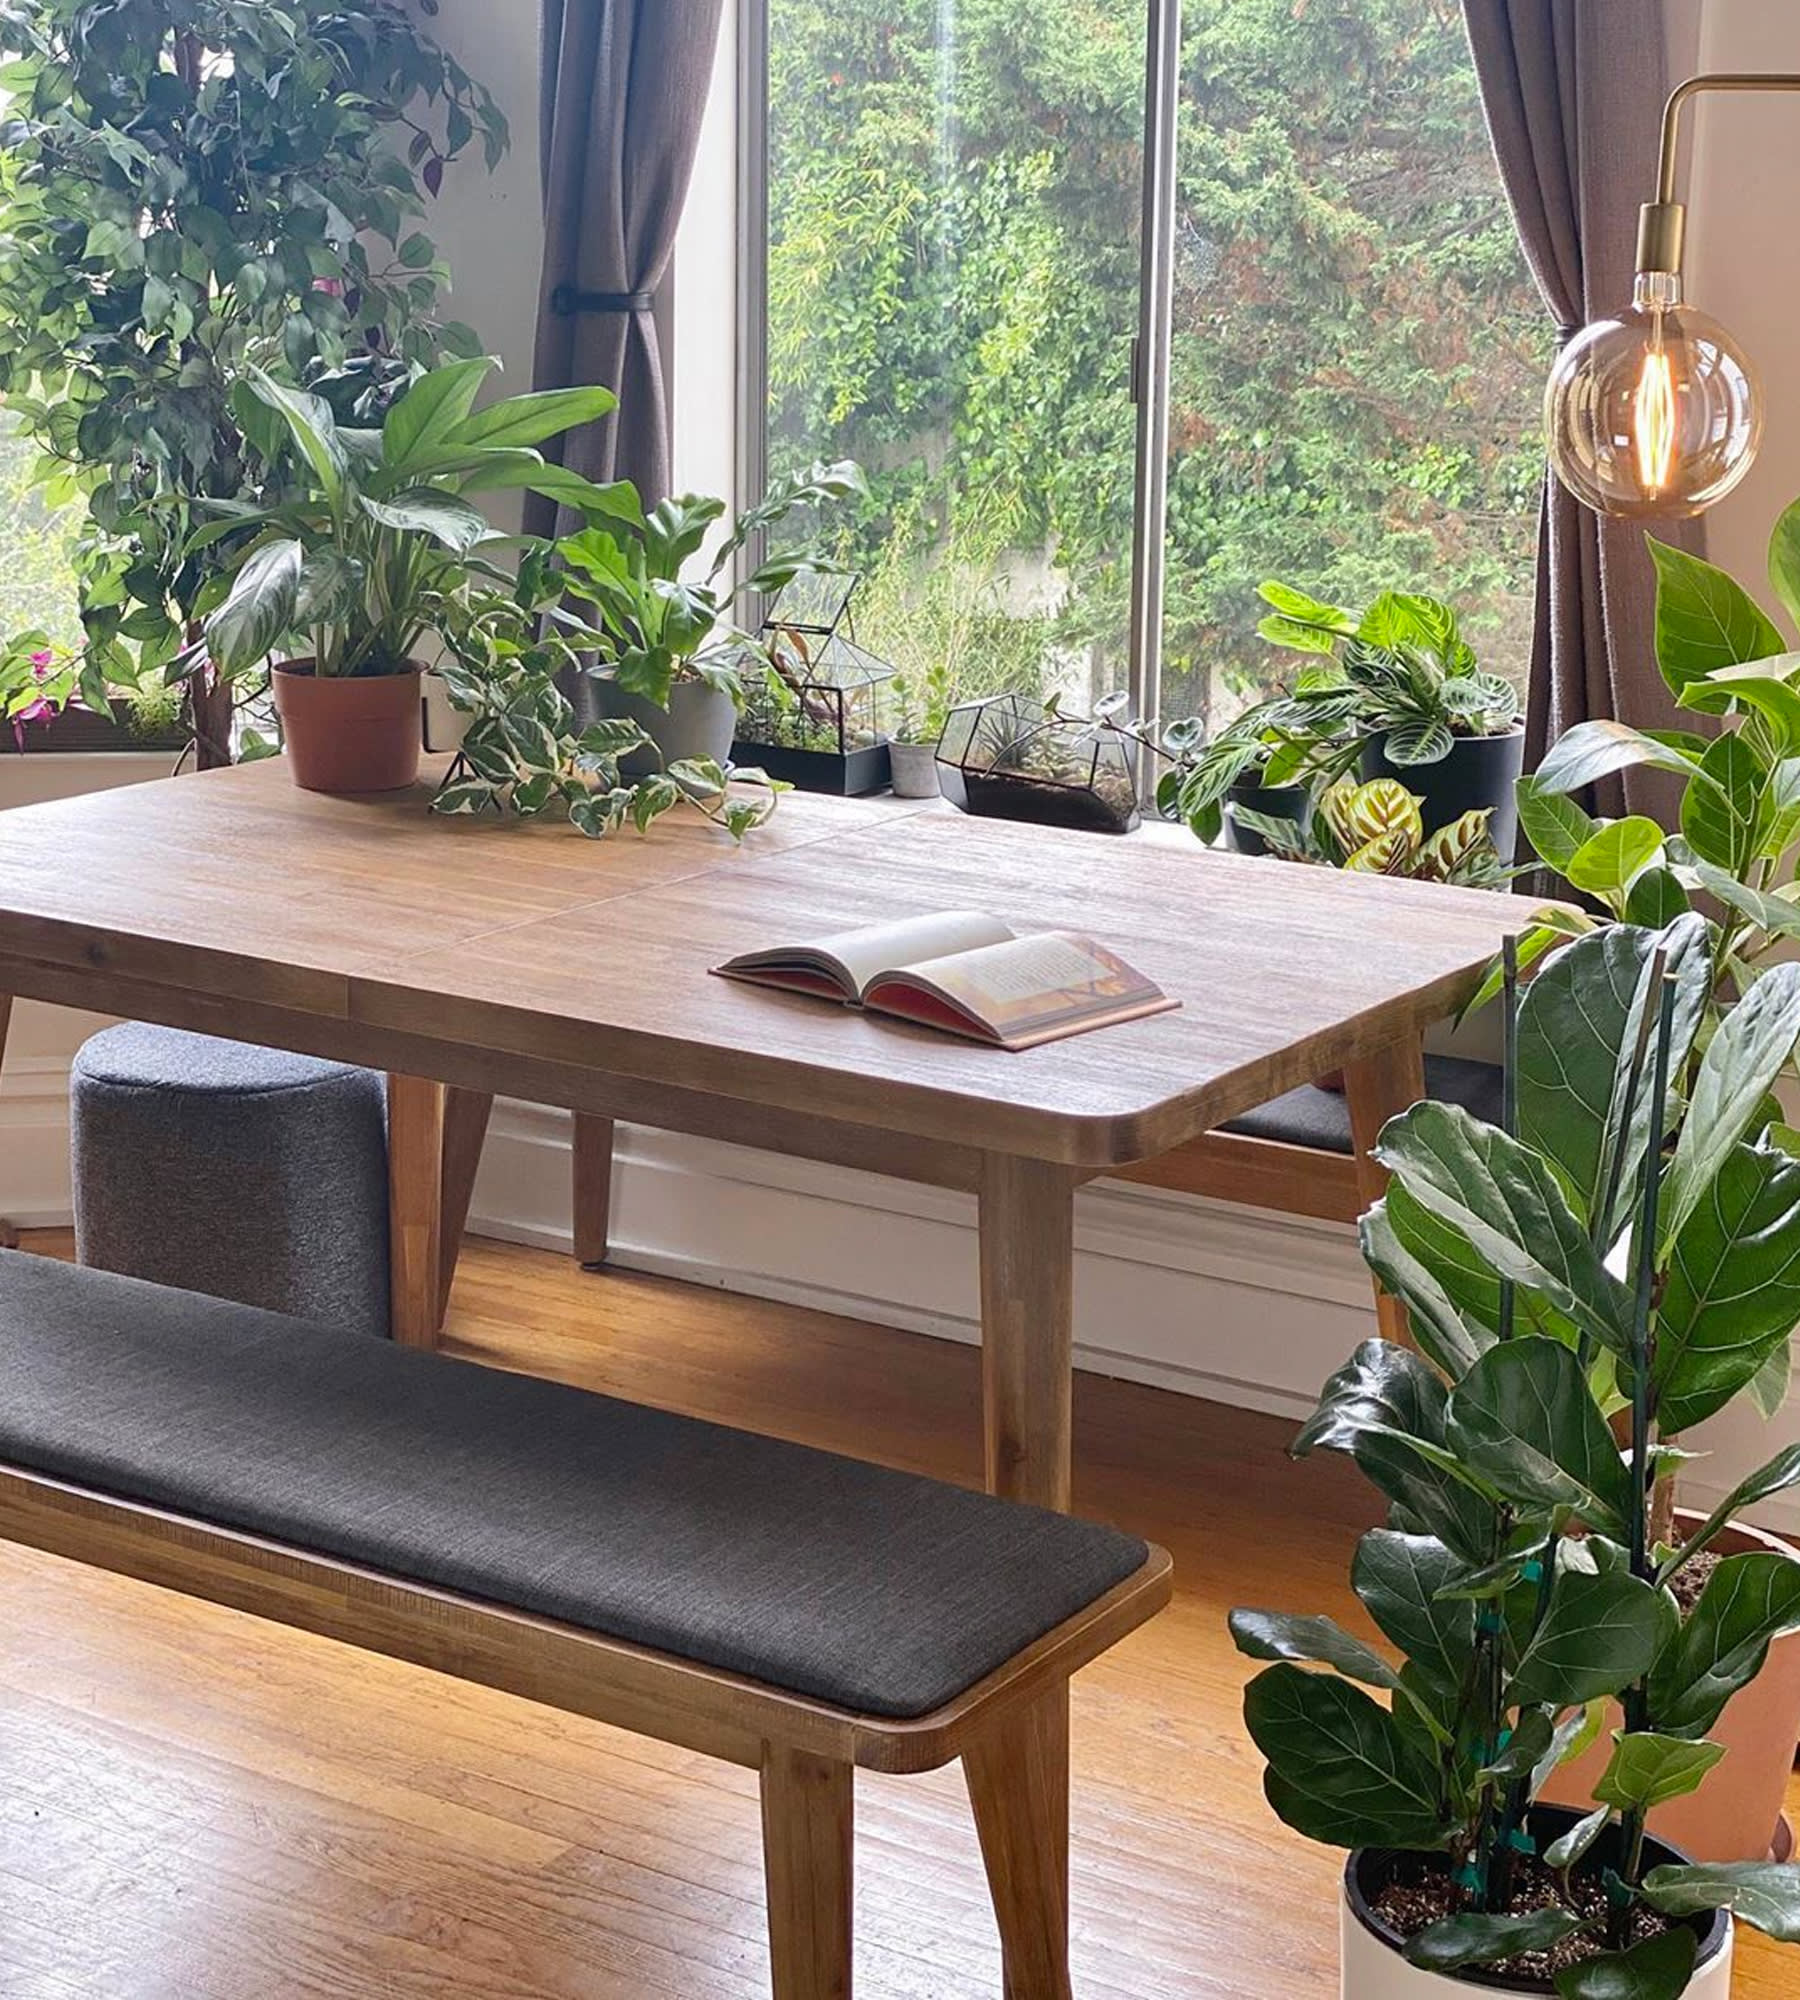 windowside wooden dining table, dining bench surrounded by potted plants